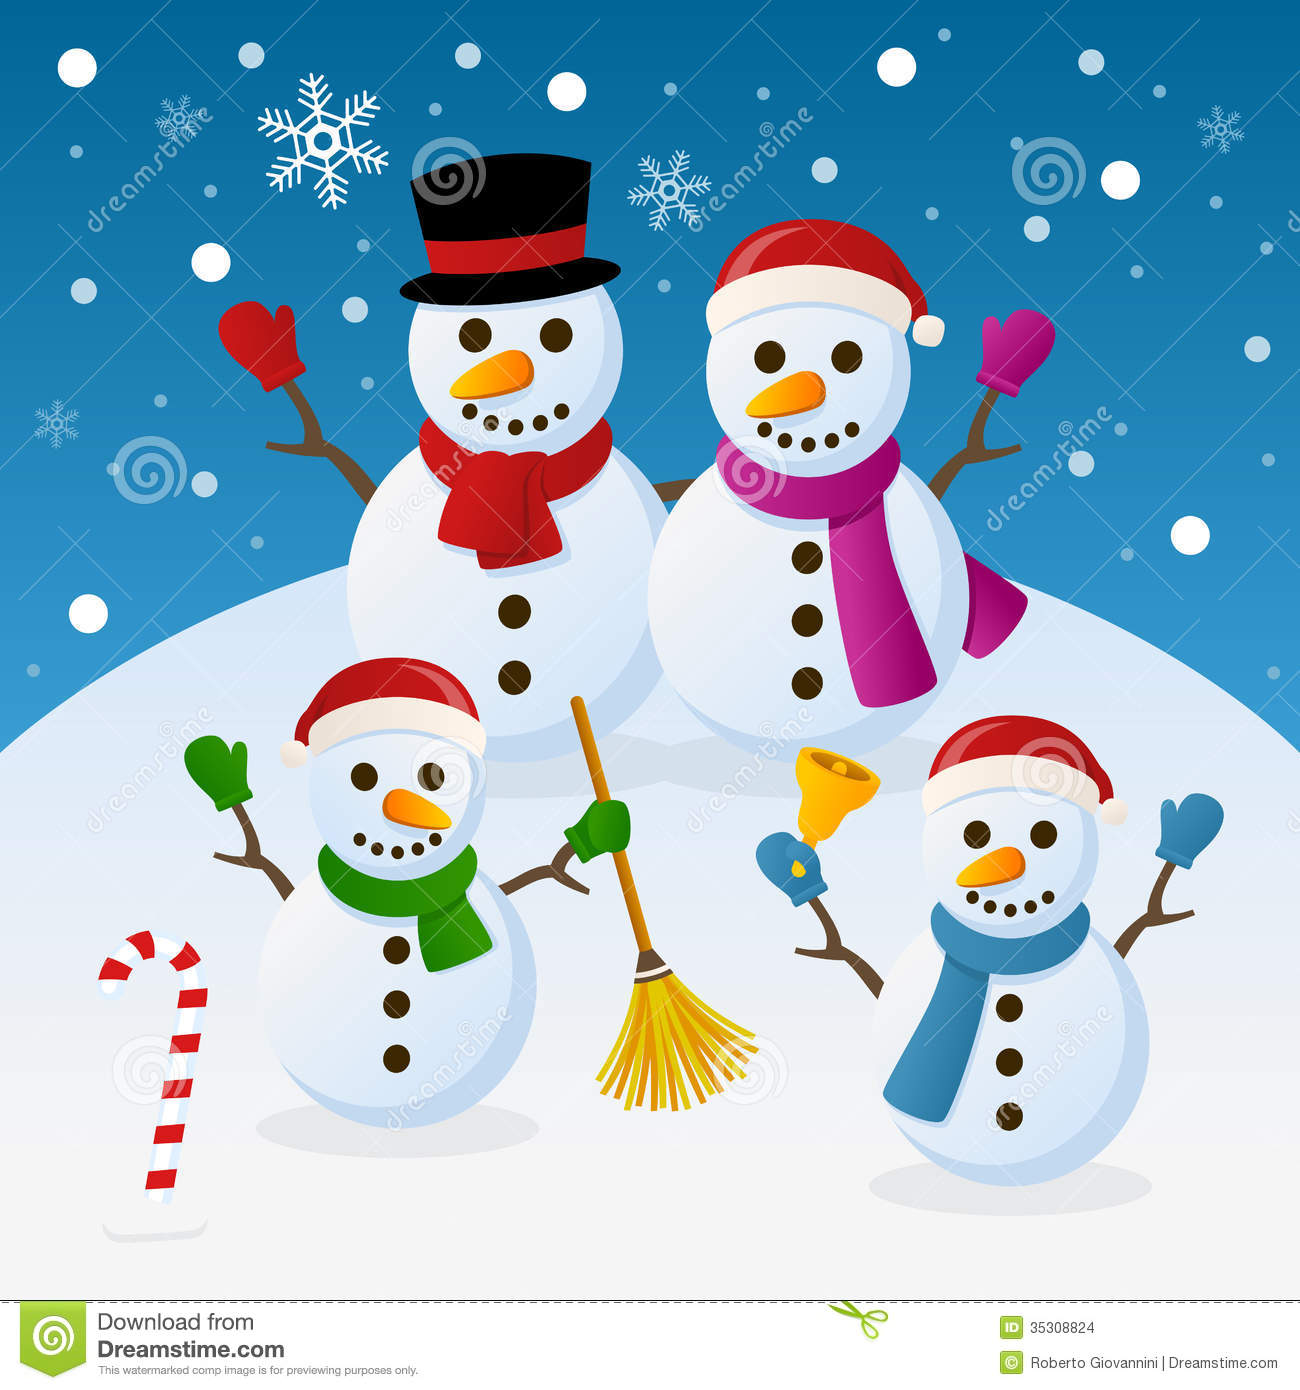 Funny christmas snowman clipart clipart suggest for How to create a snowman